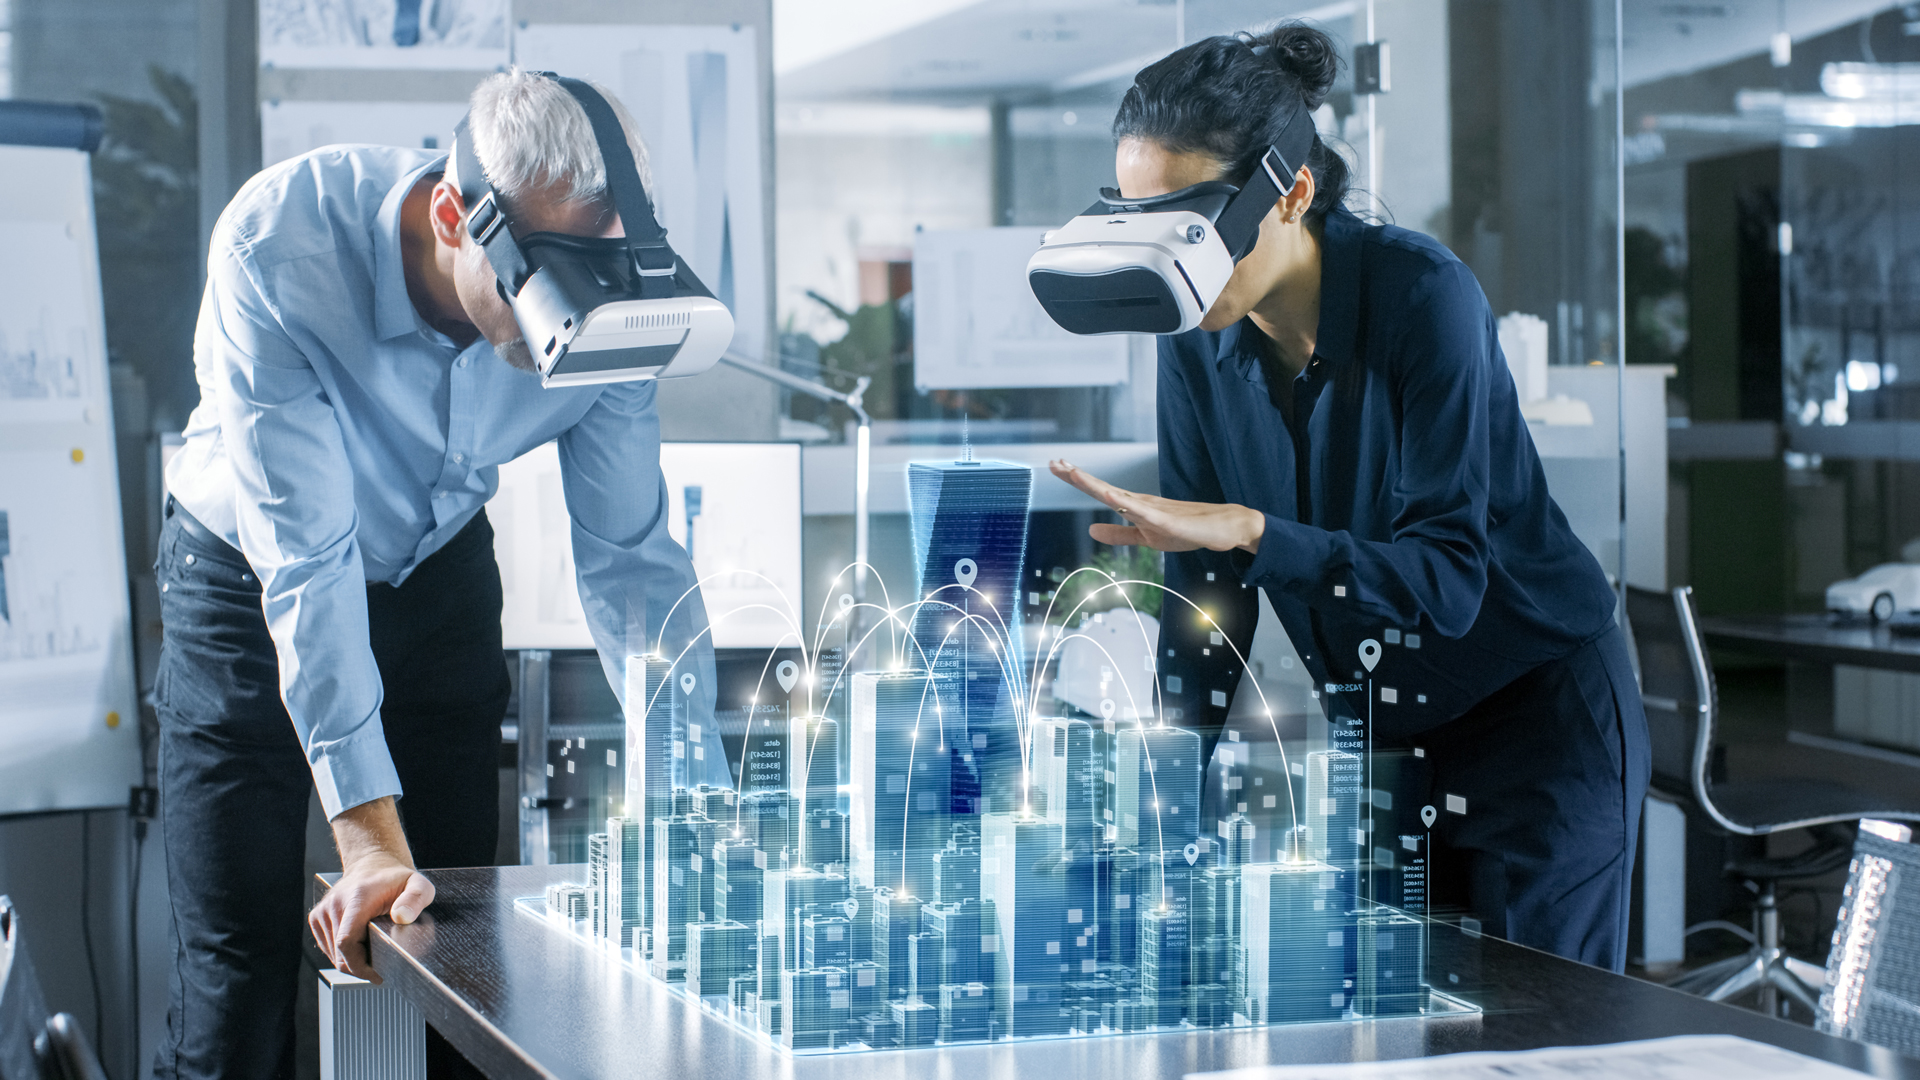 Man and woman in an office environment with VR headsets on bending over a table that has a virtual city scape growing out if it and some graphic arches connecting some buildings.